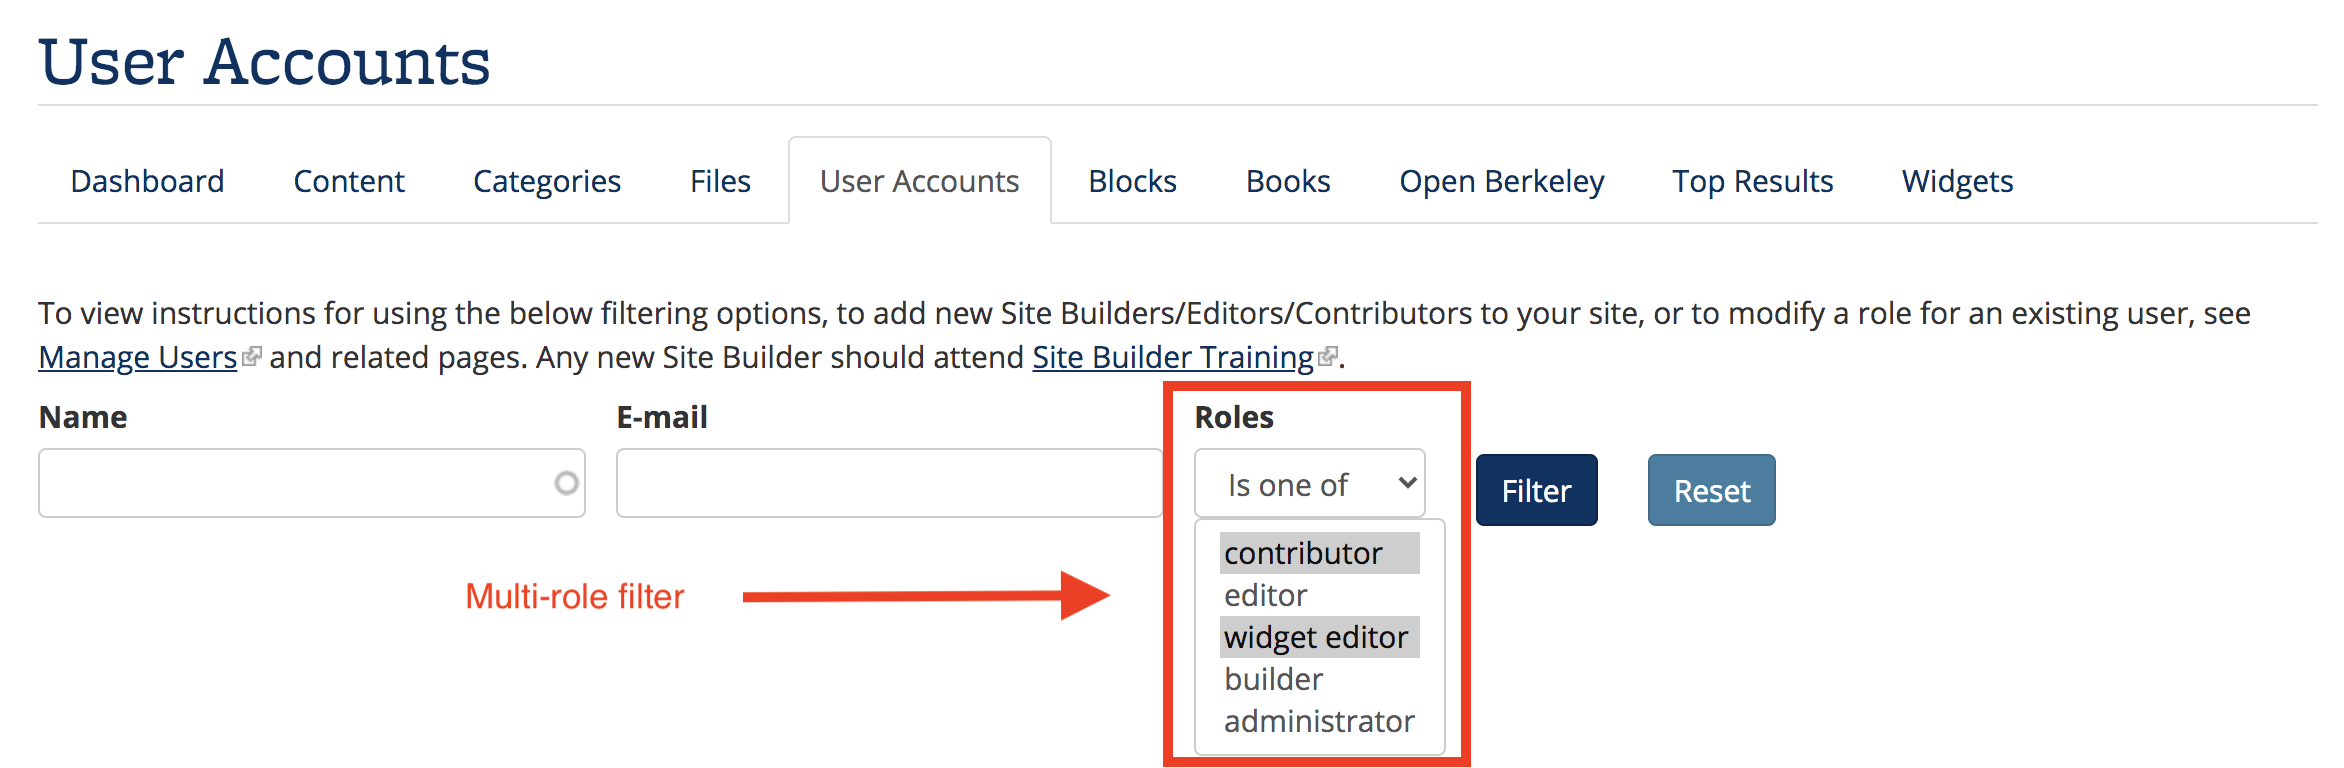 Screenshot of multi-role filter on User Accounts page